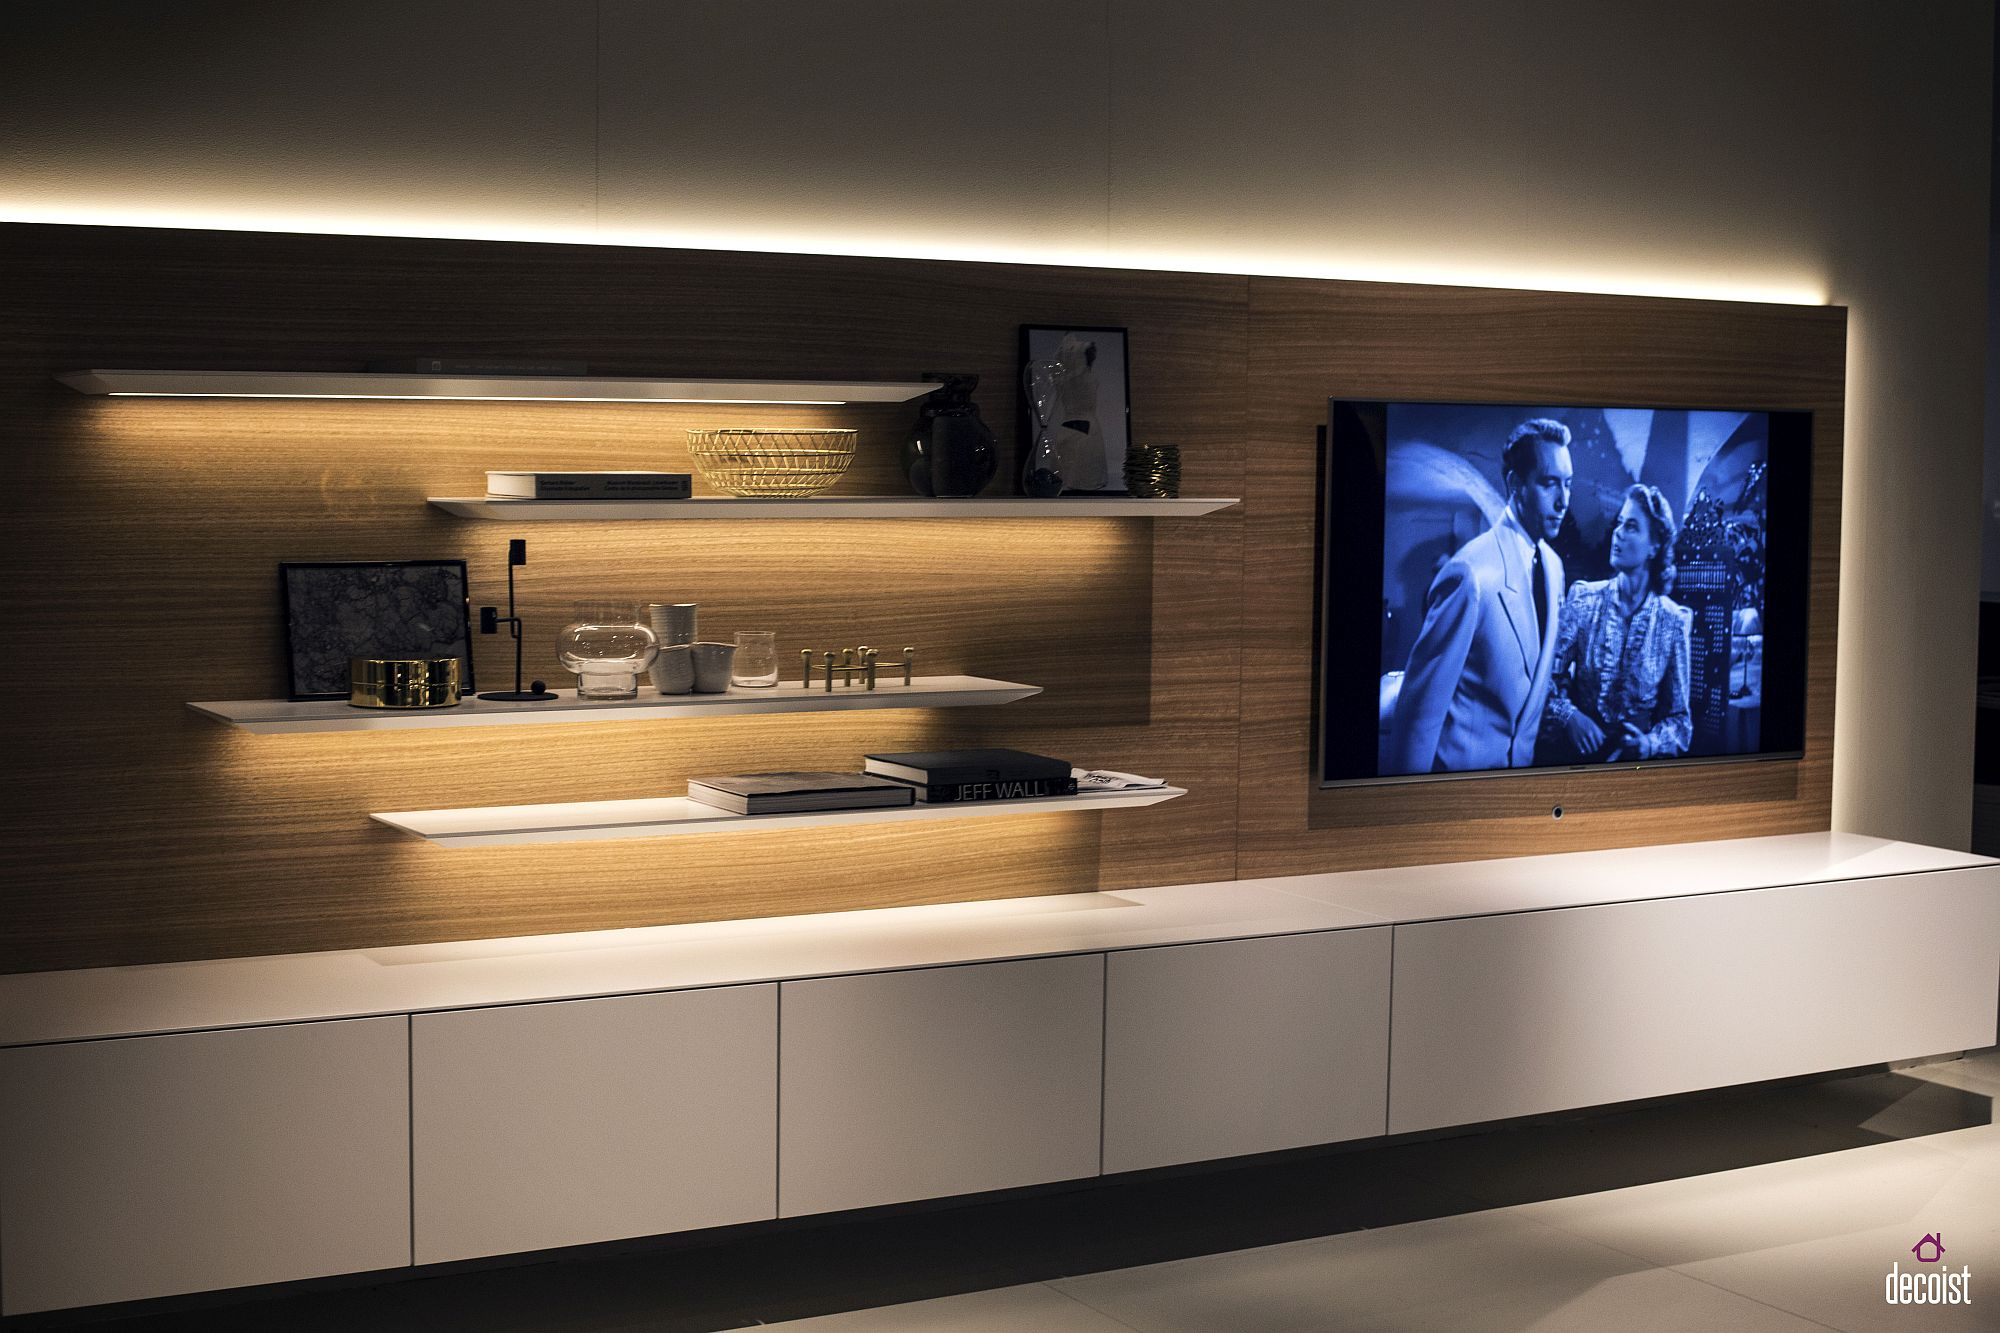 Under-shelf LED strip lighting adds to the aura of the TV wall unit